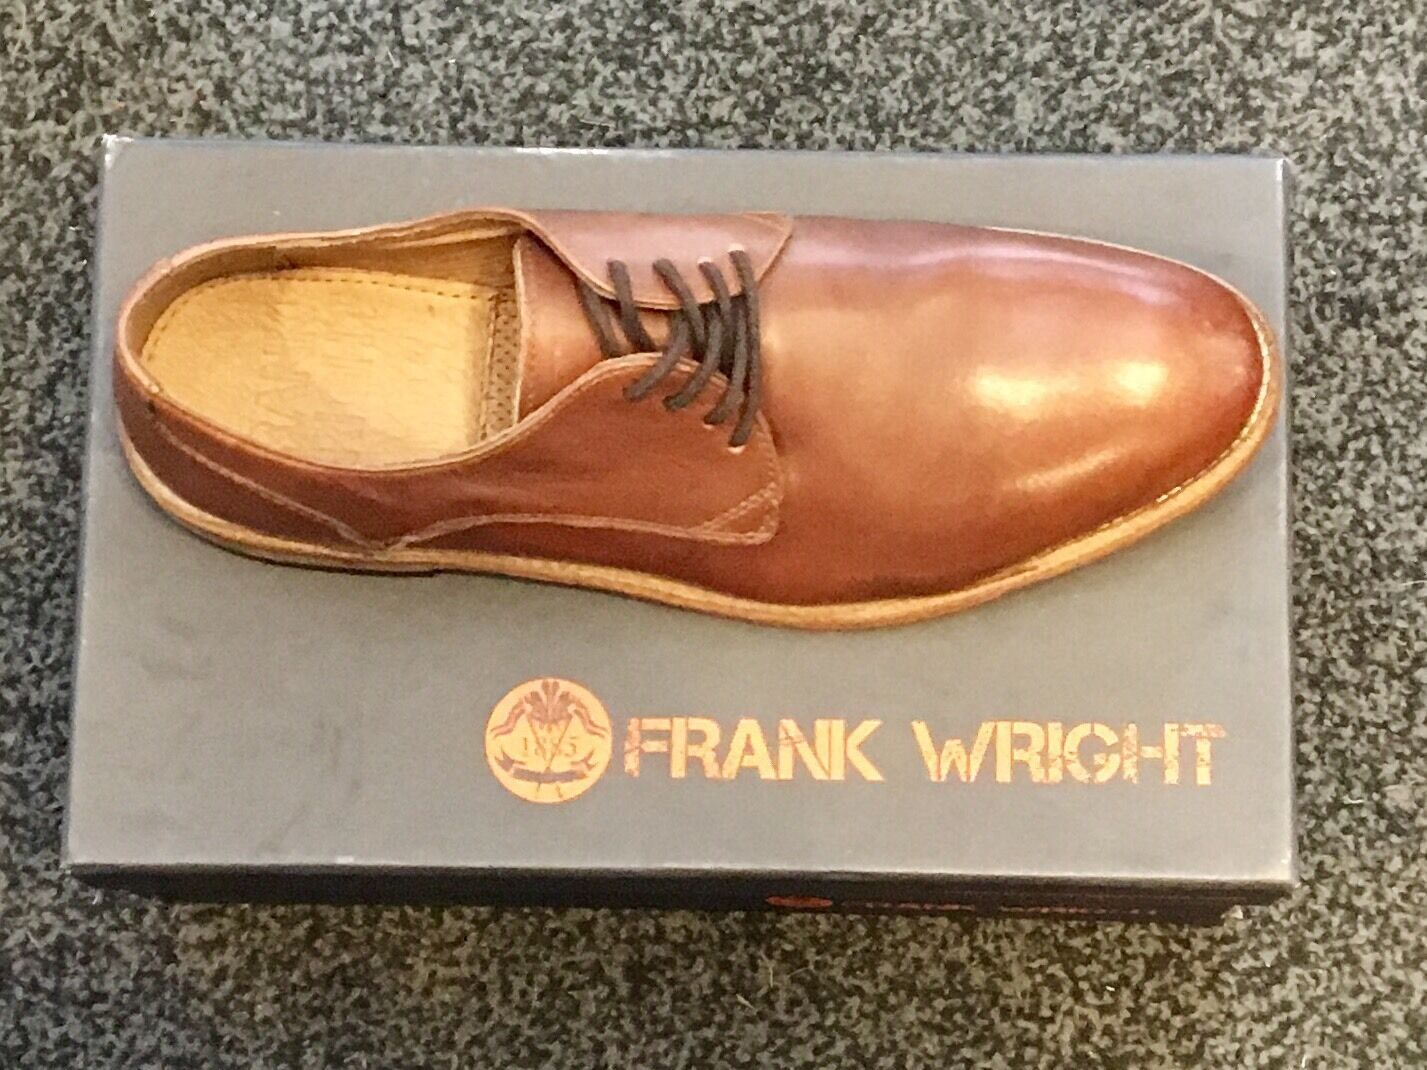 FRANK WRIGHT Mens shoes. 11 45. tan. Brand New .Leather Sole.Solid pair of shoes